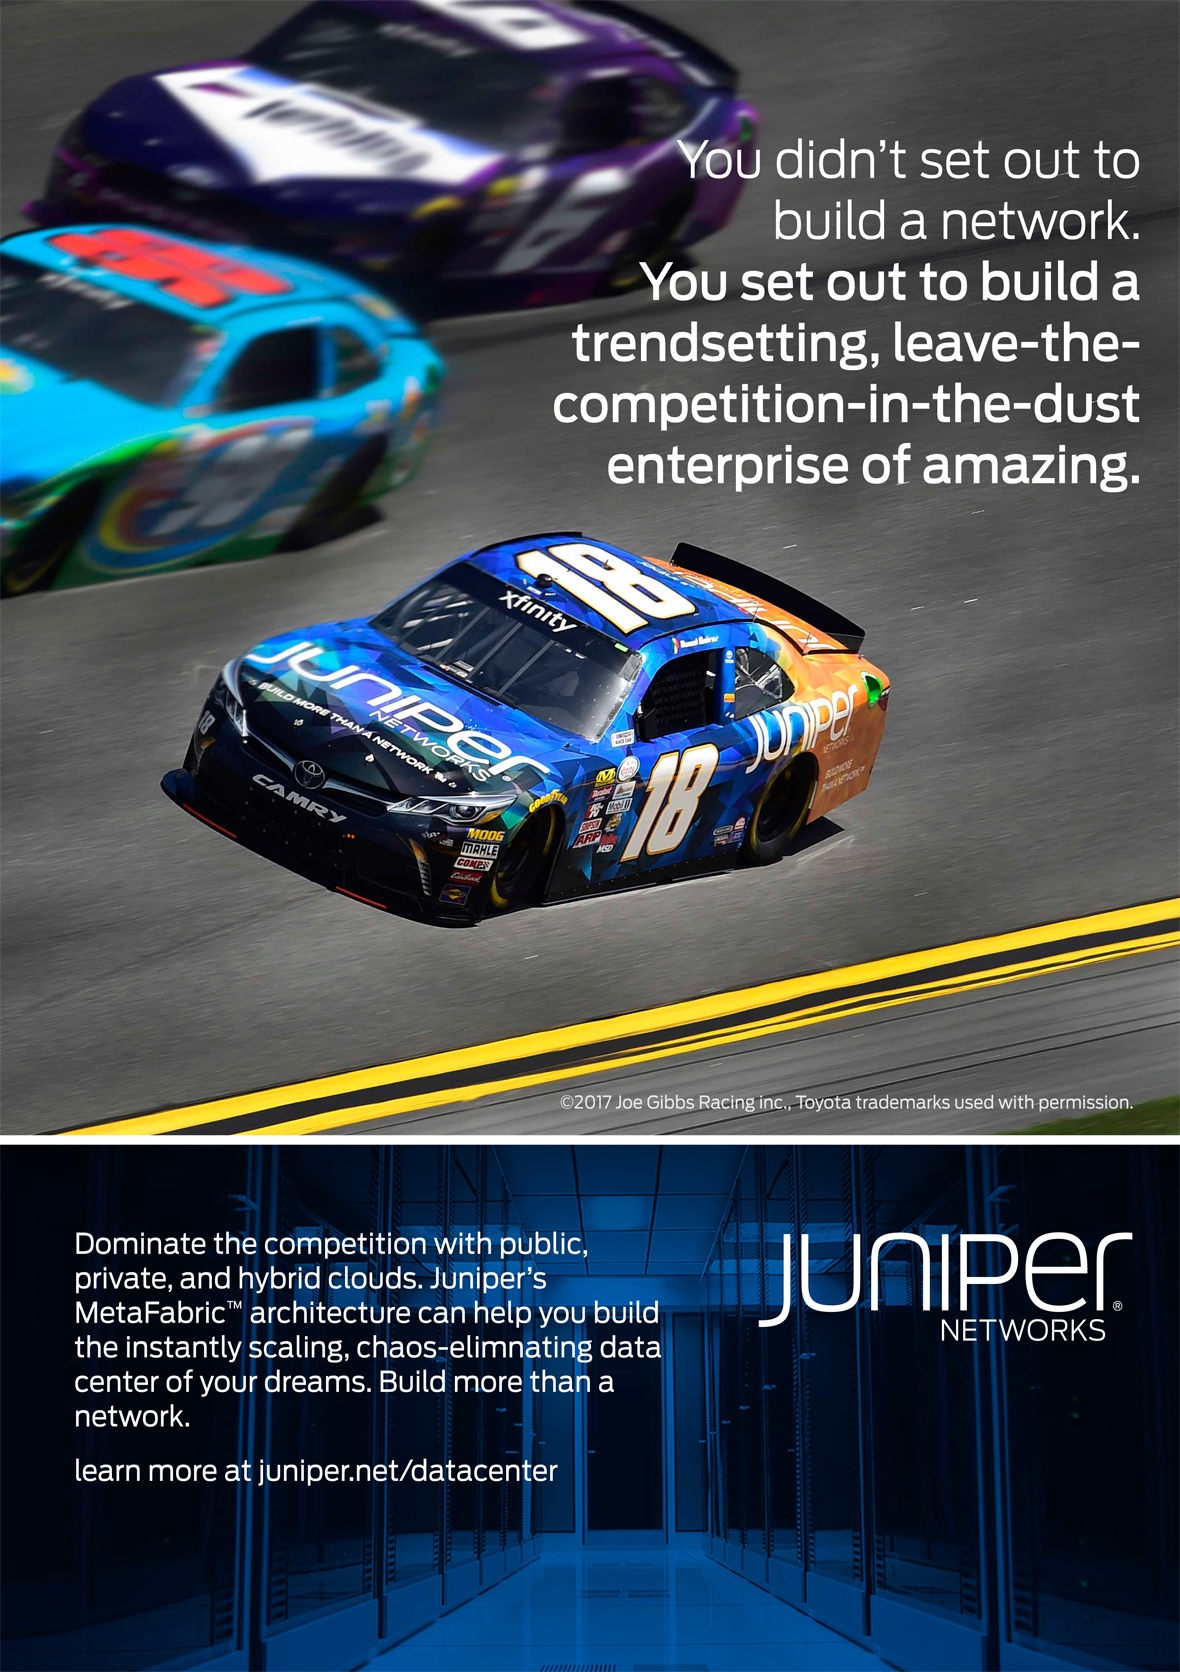 juniper- Most Advertisement Brand by My Brand Book